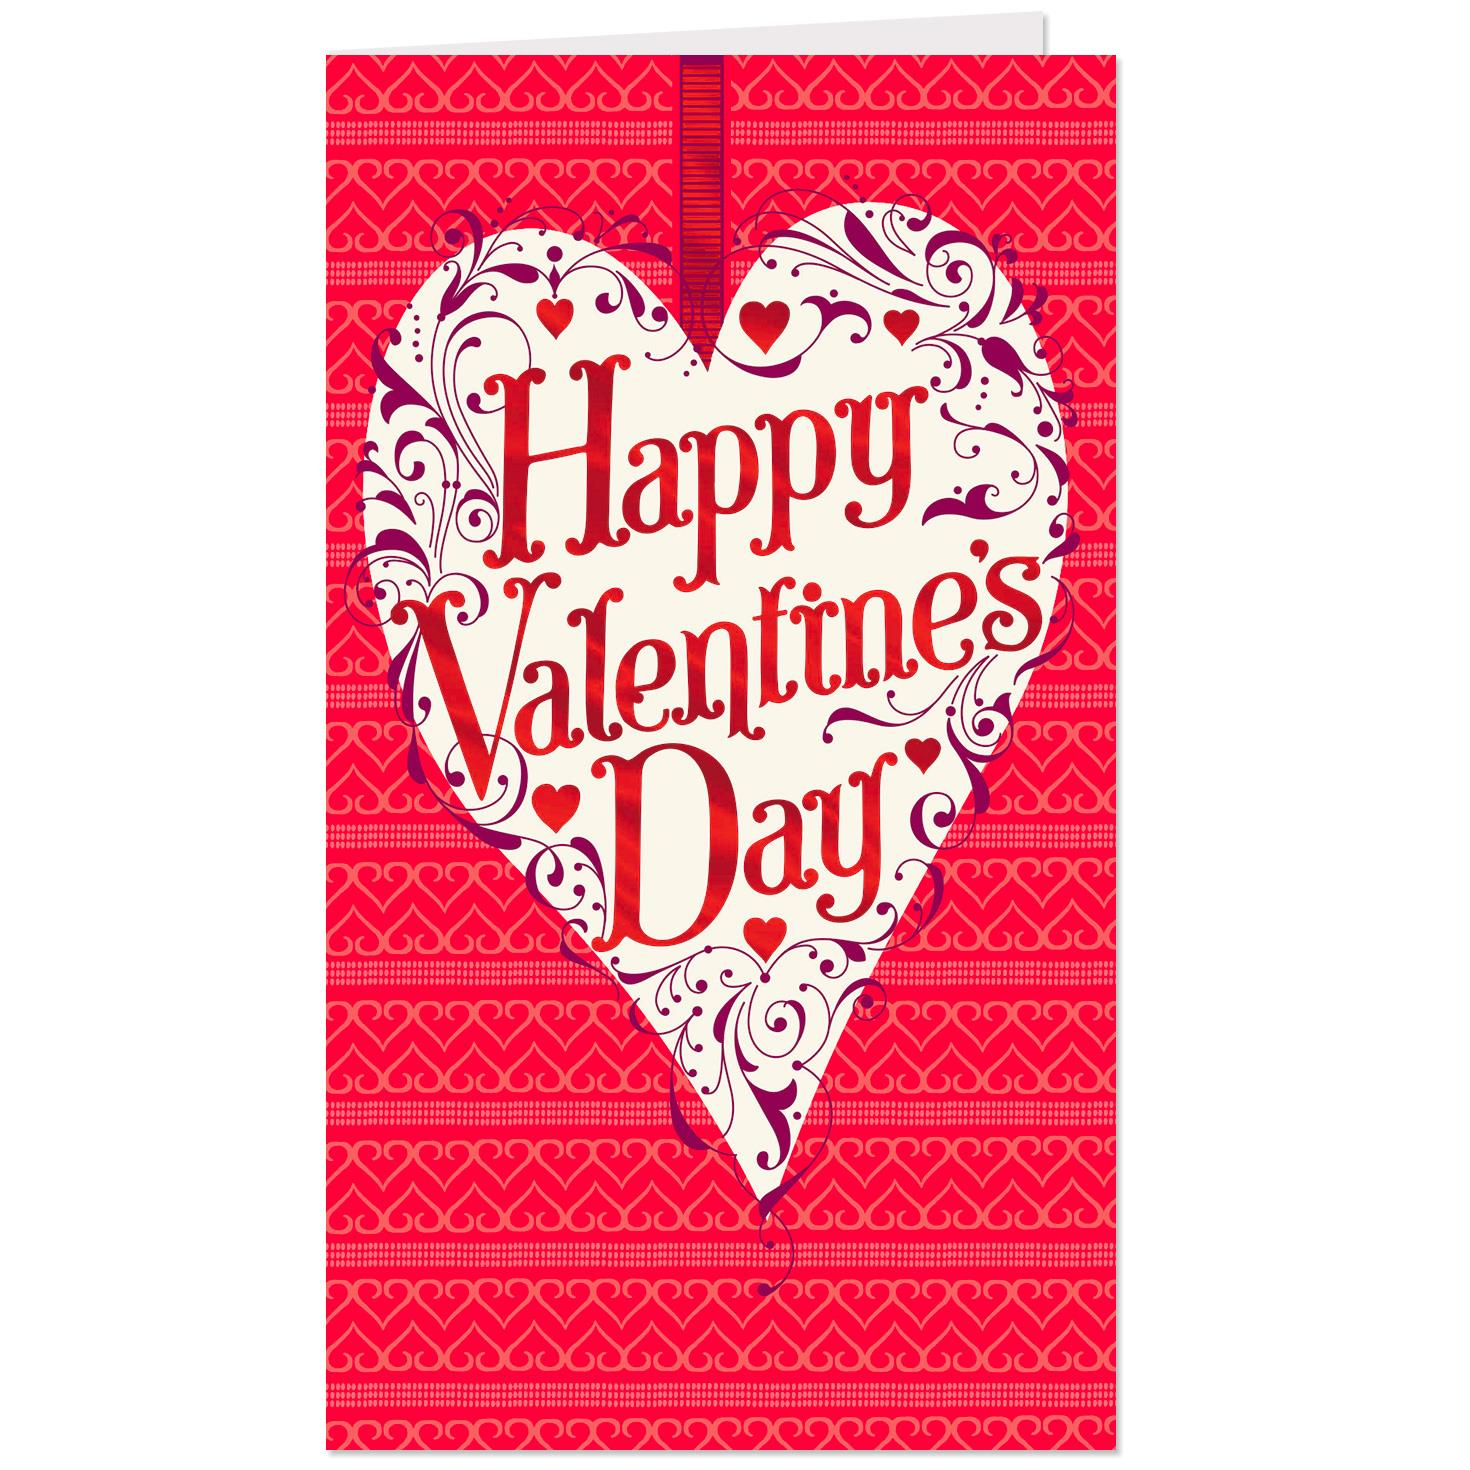 Sent With Love Valentine's Day Cards, Pack of 6 - Boxed ...